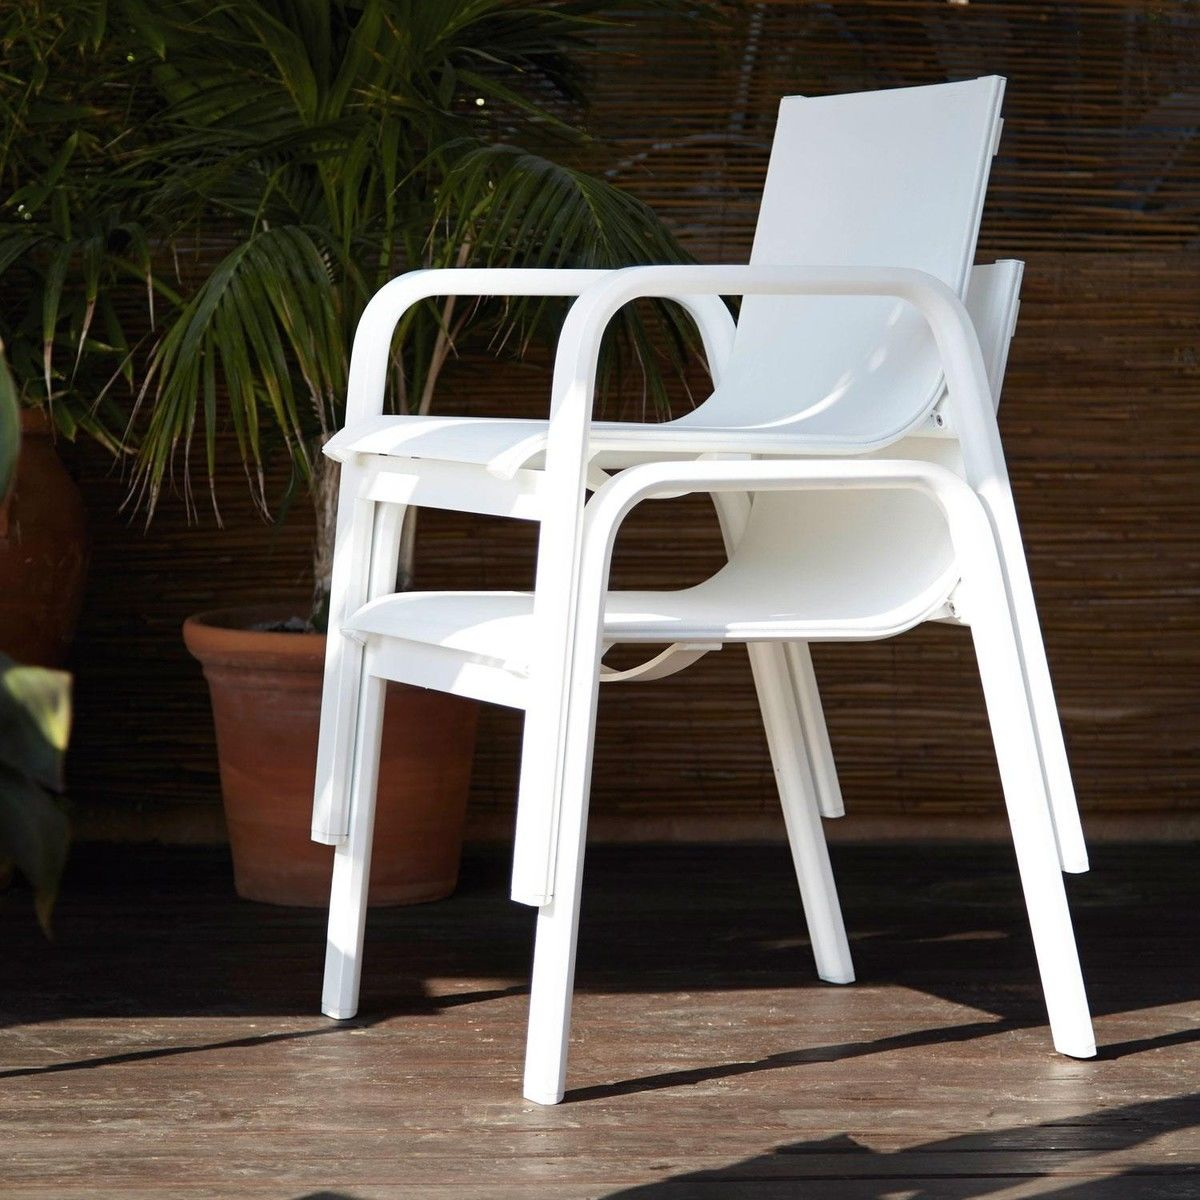 gandia blasco clack chair recliner covers uk stack garden with armrests